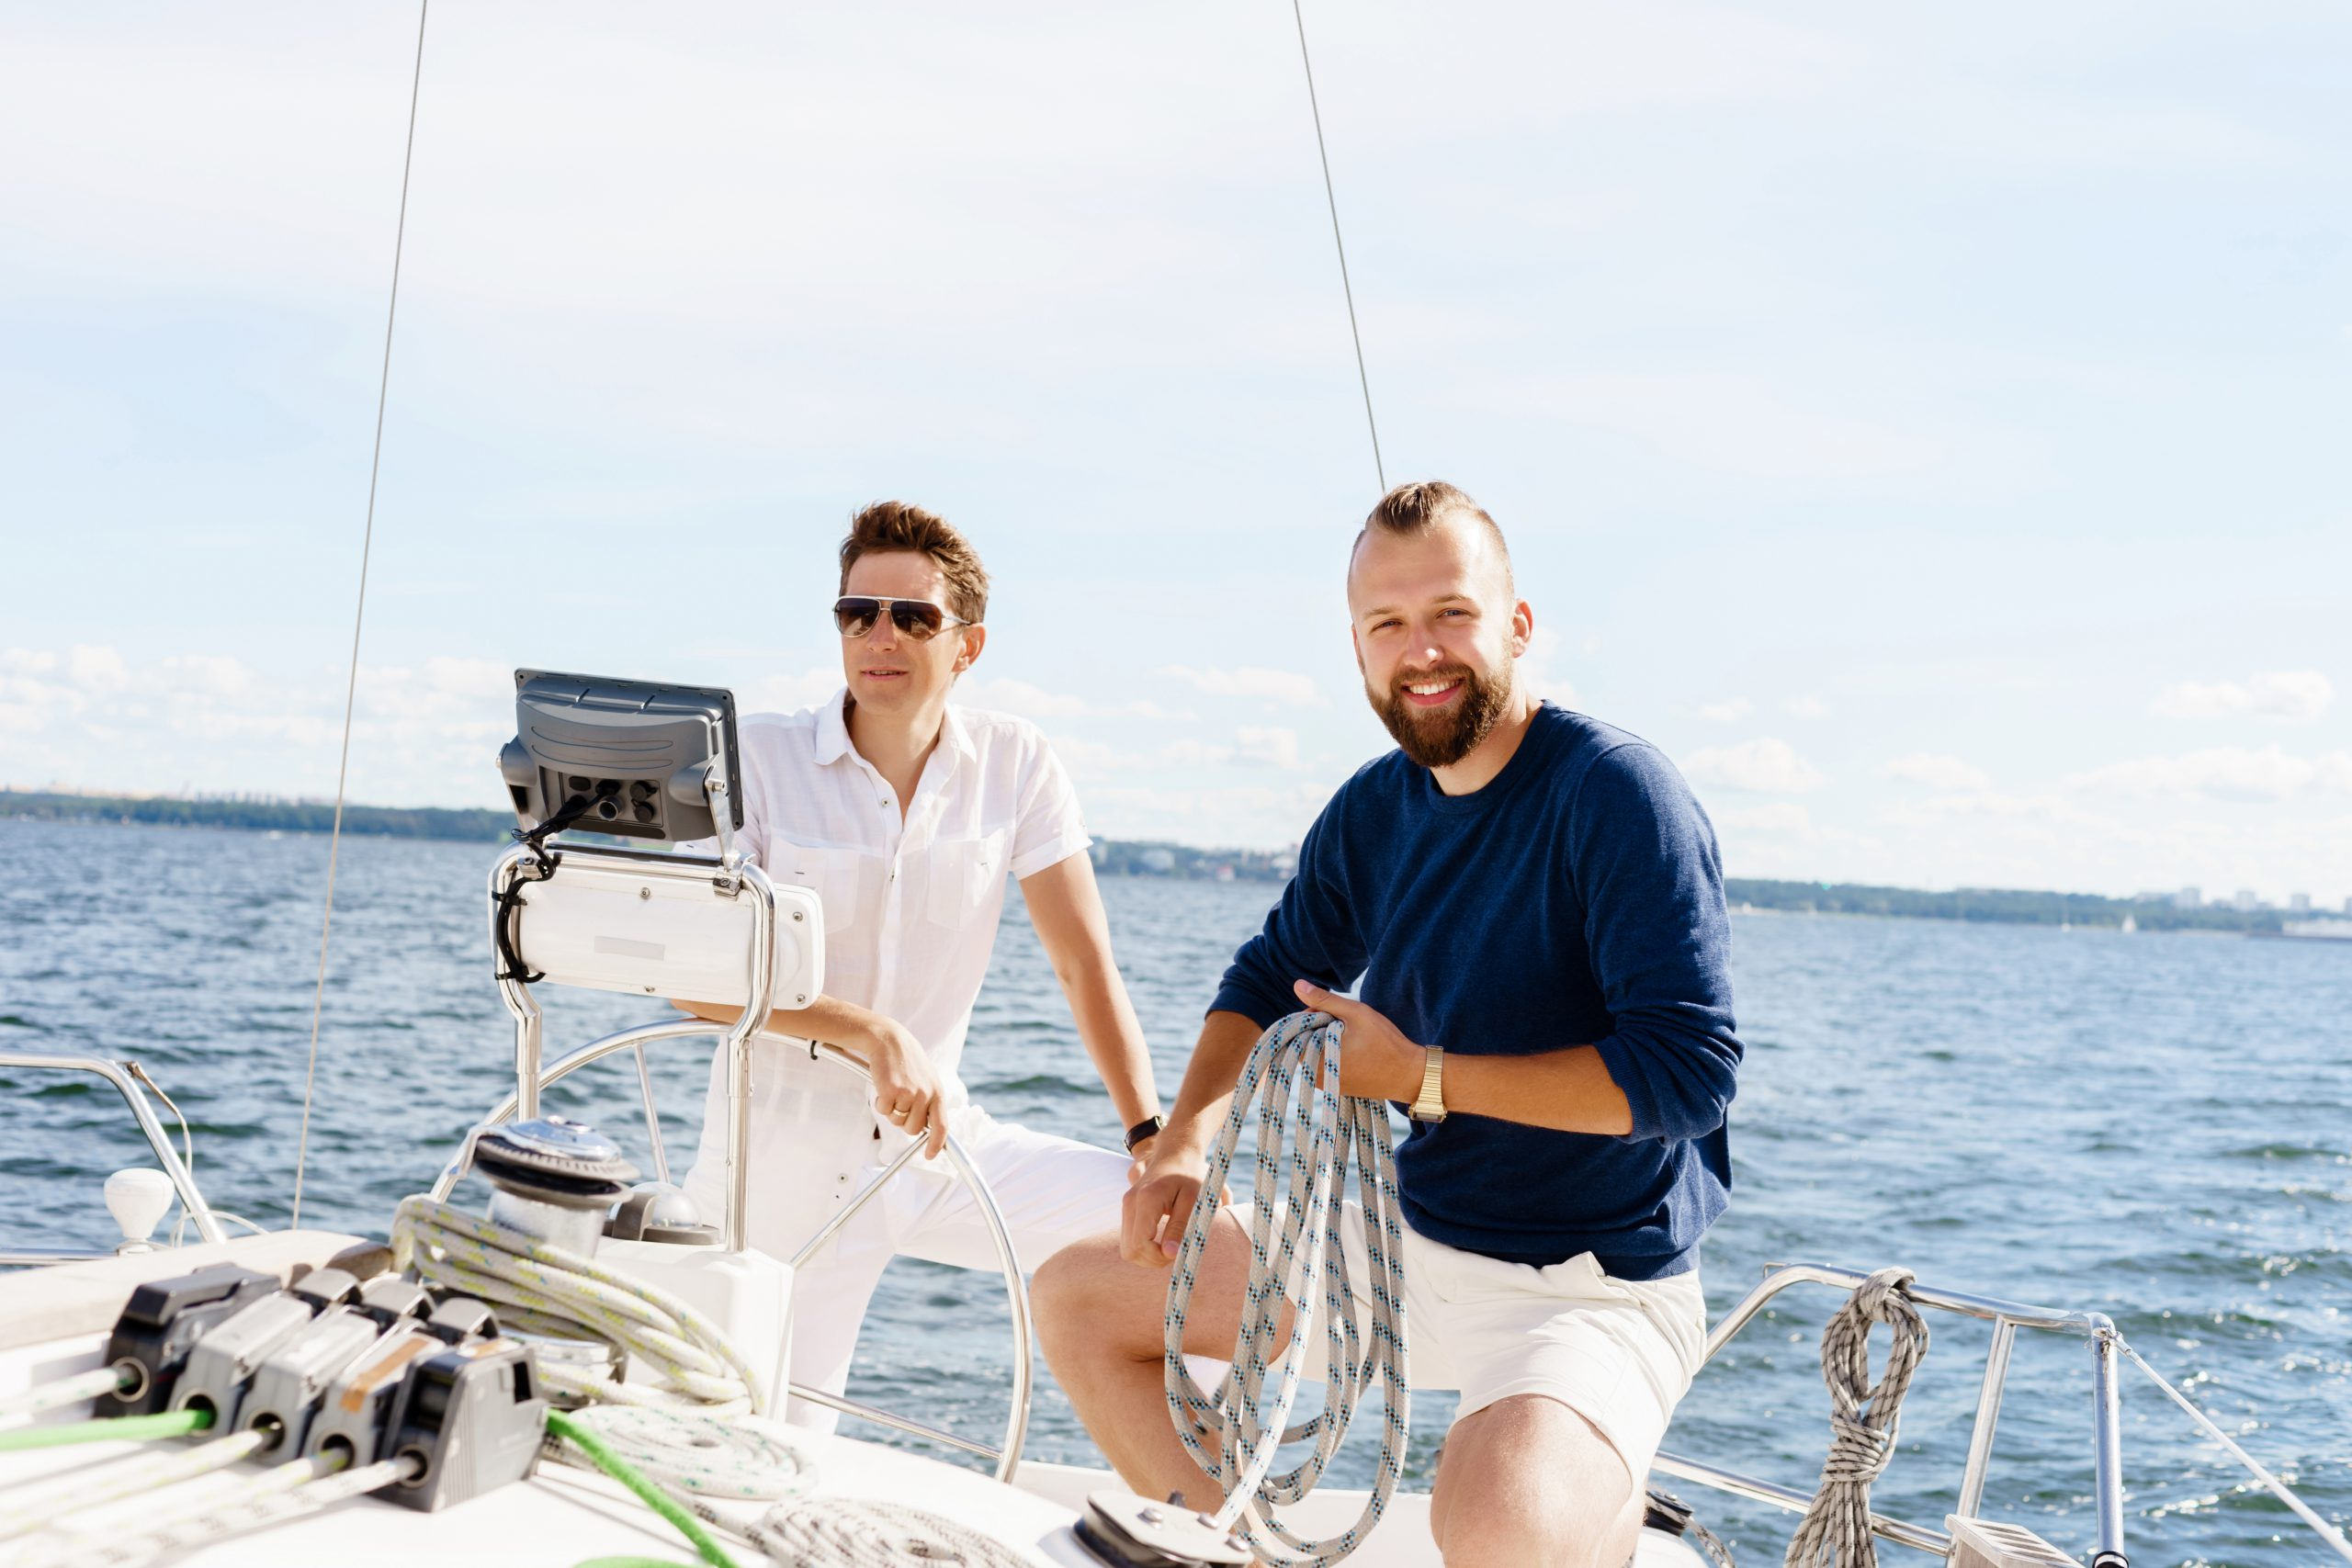 Two men stood on a boat with the ocean behind them